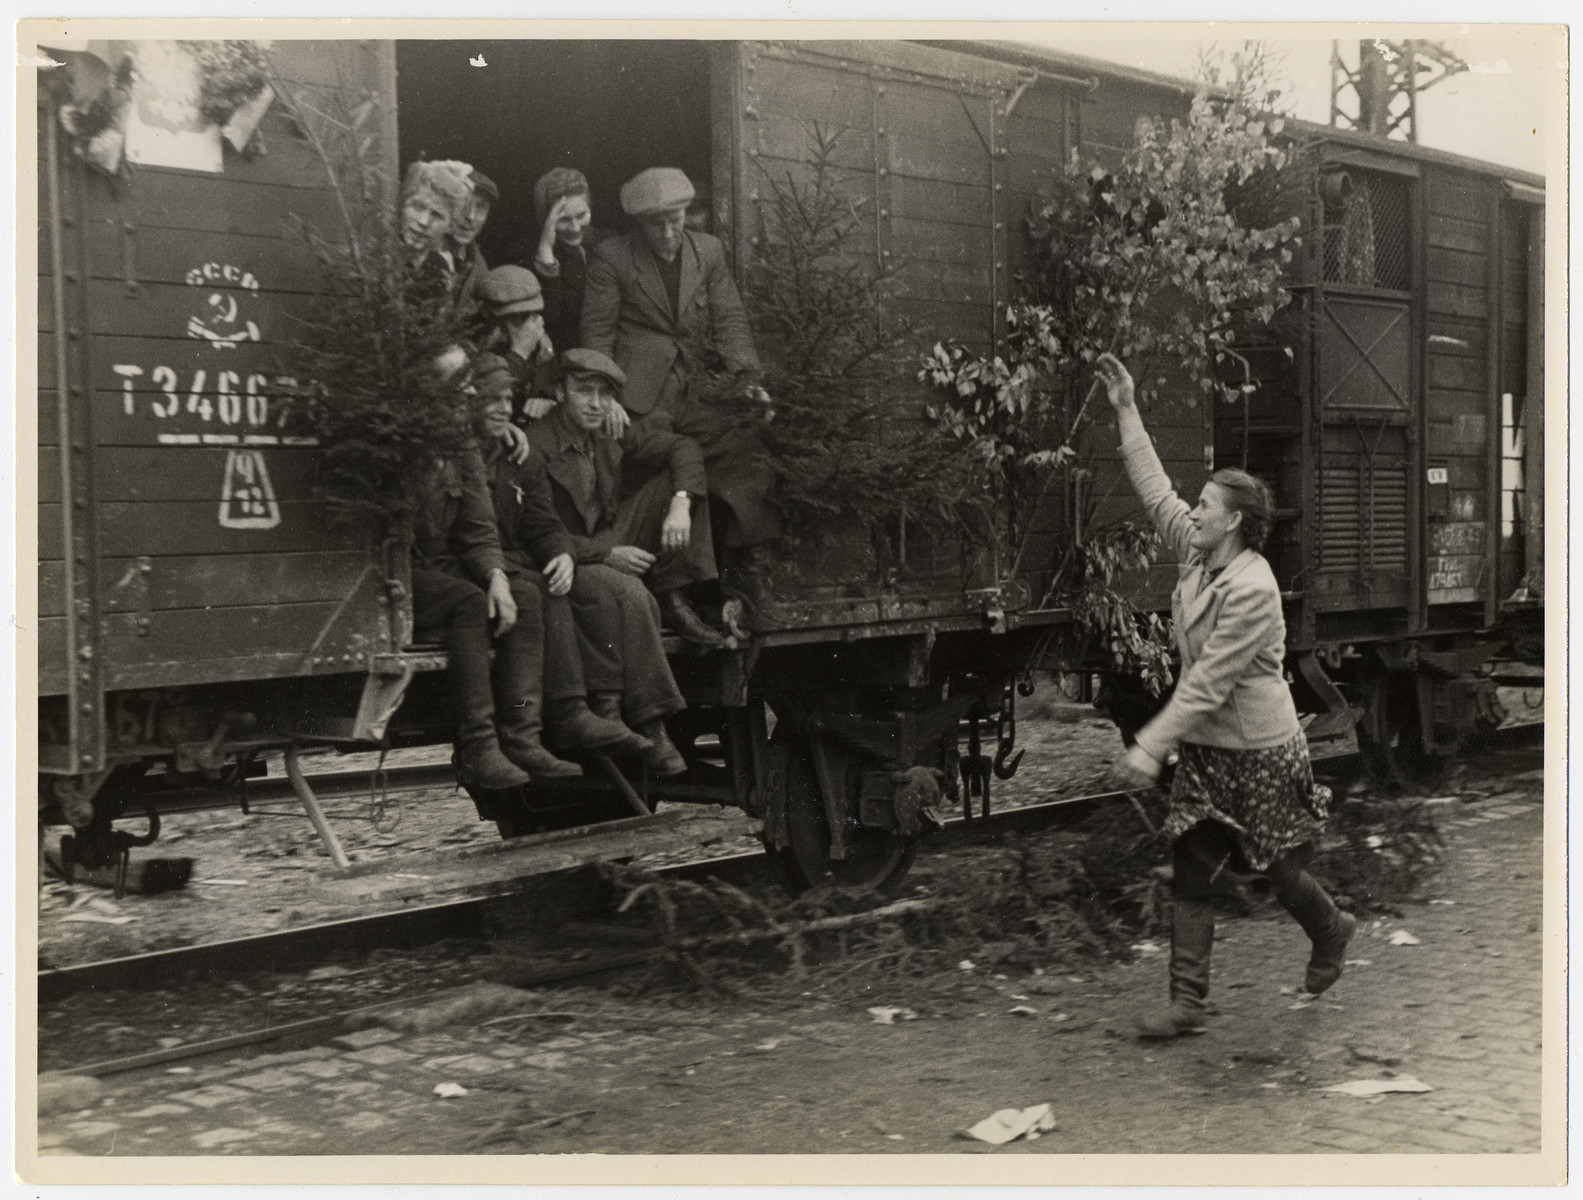 A woman waves farewell to displaced persons leaving Germany on a decorated U.S. Army train.